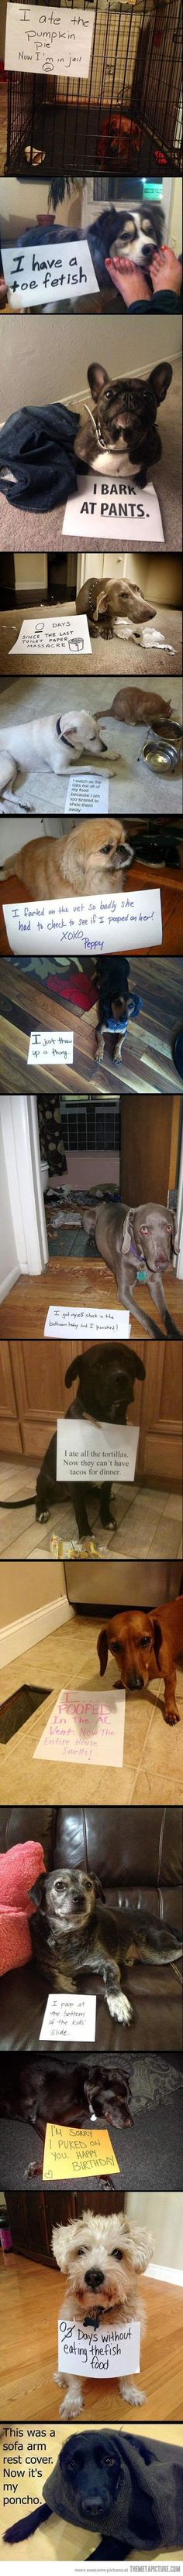 The best of dog shaming.